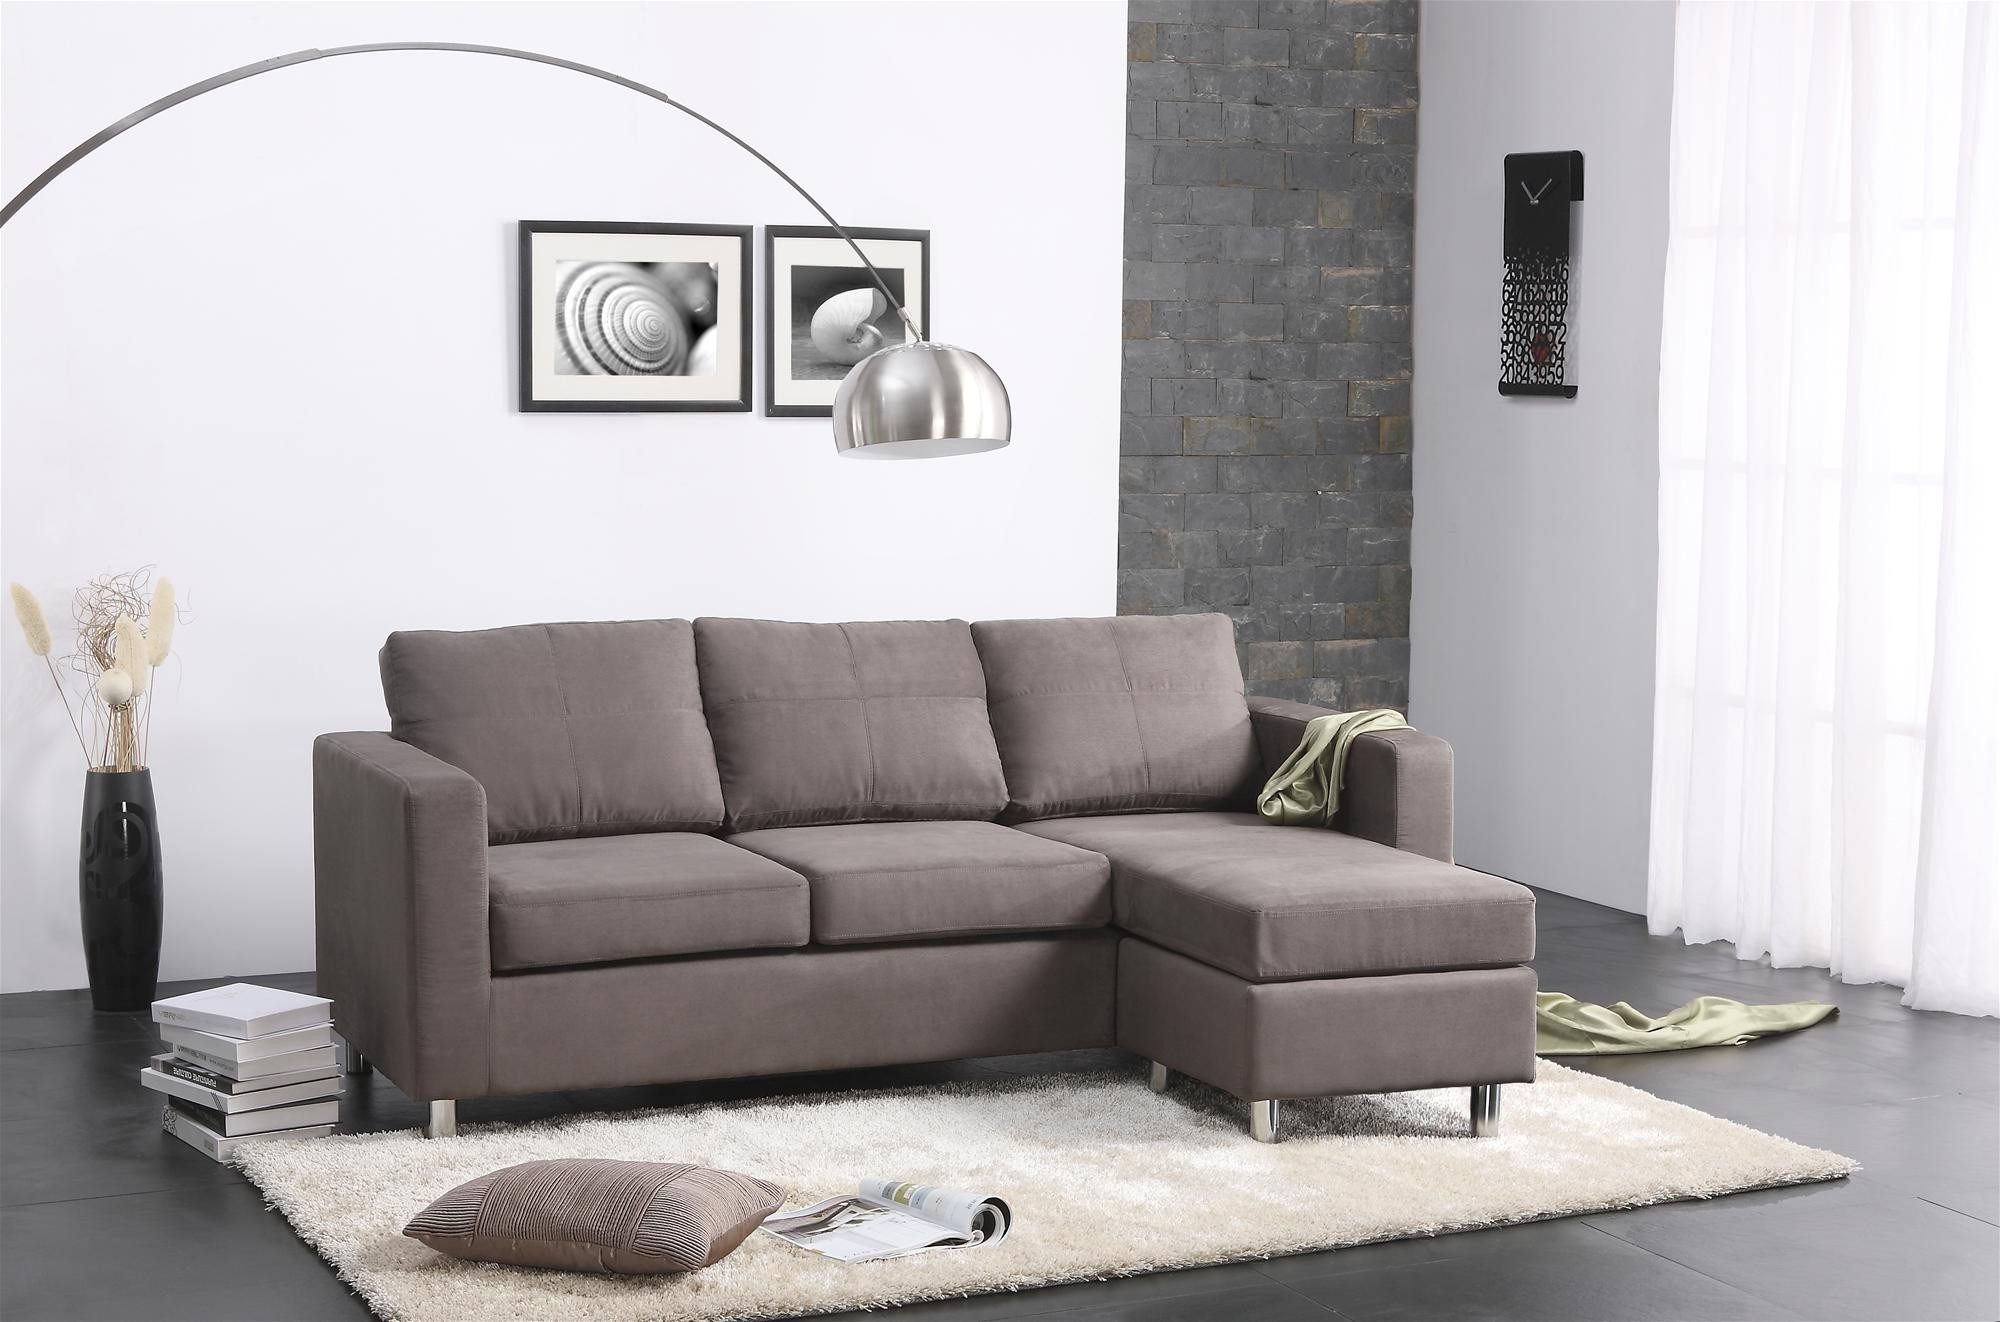 Sectional Sofa : Round Settee Room Sofa Round Leather Sectional Sofa For Sectional Sofas For Small Spaces (View 9 of 15)